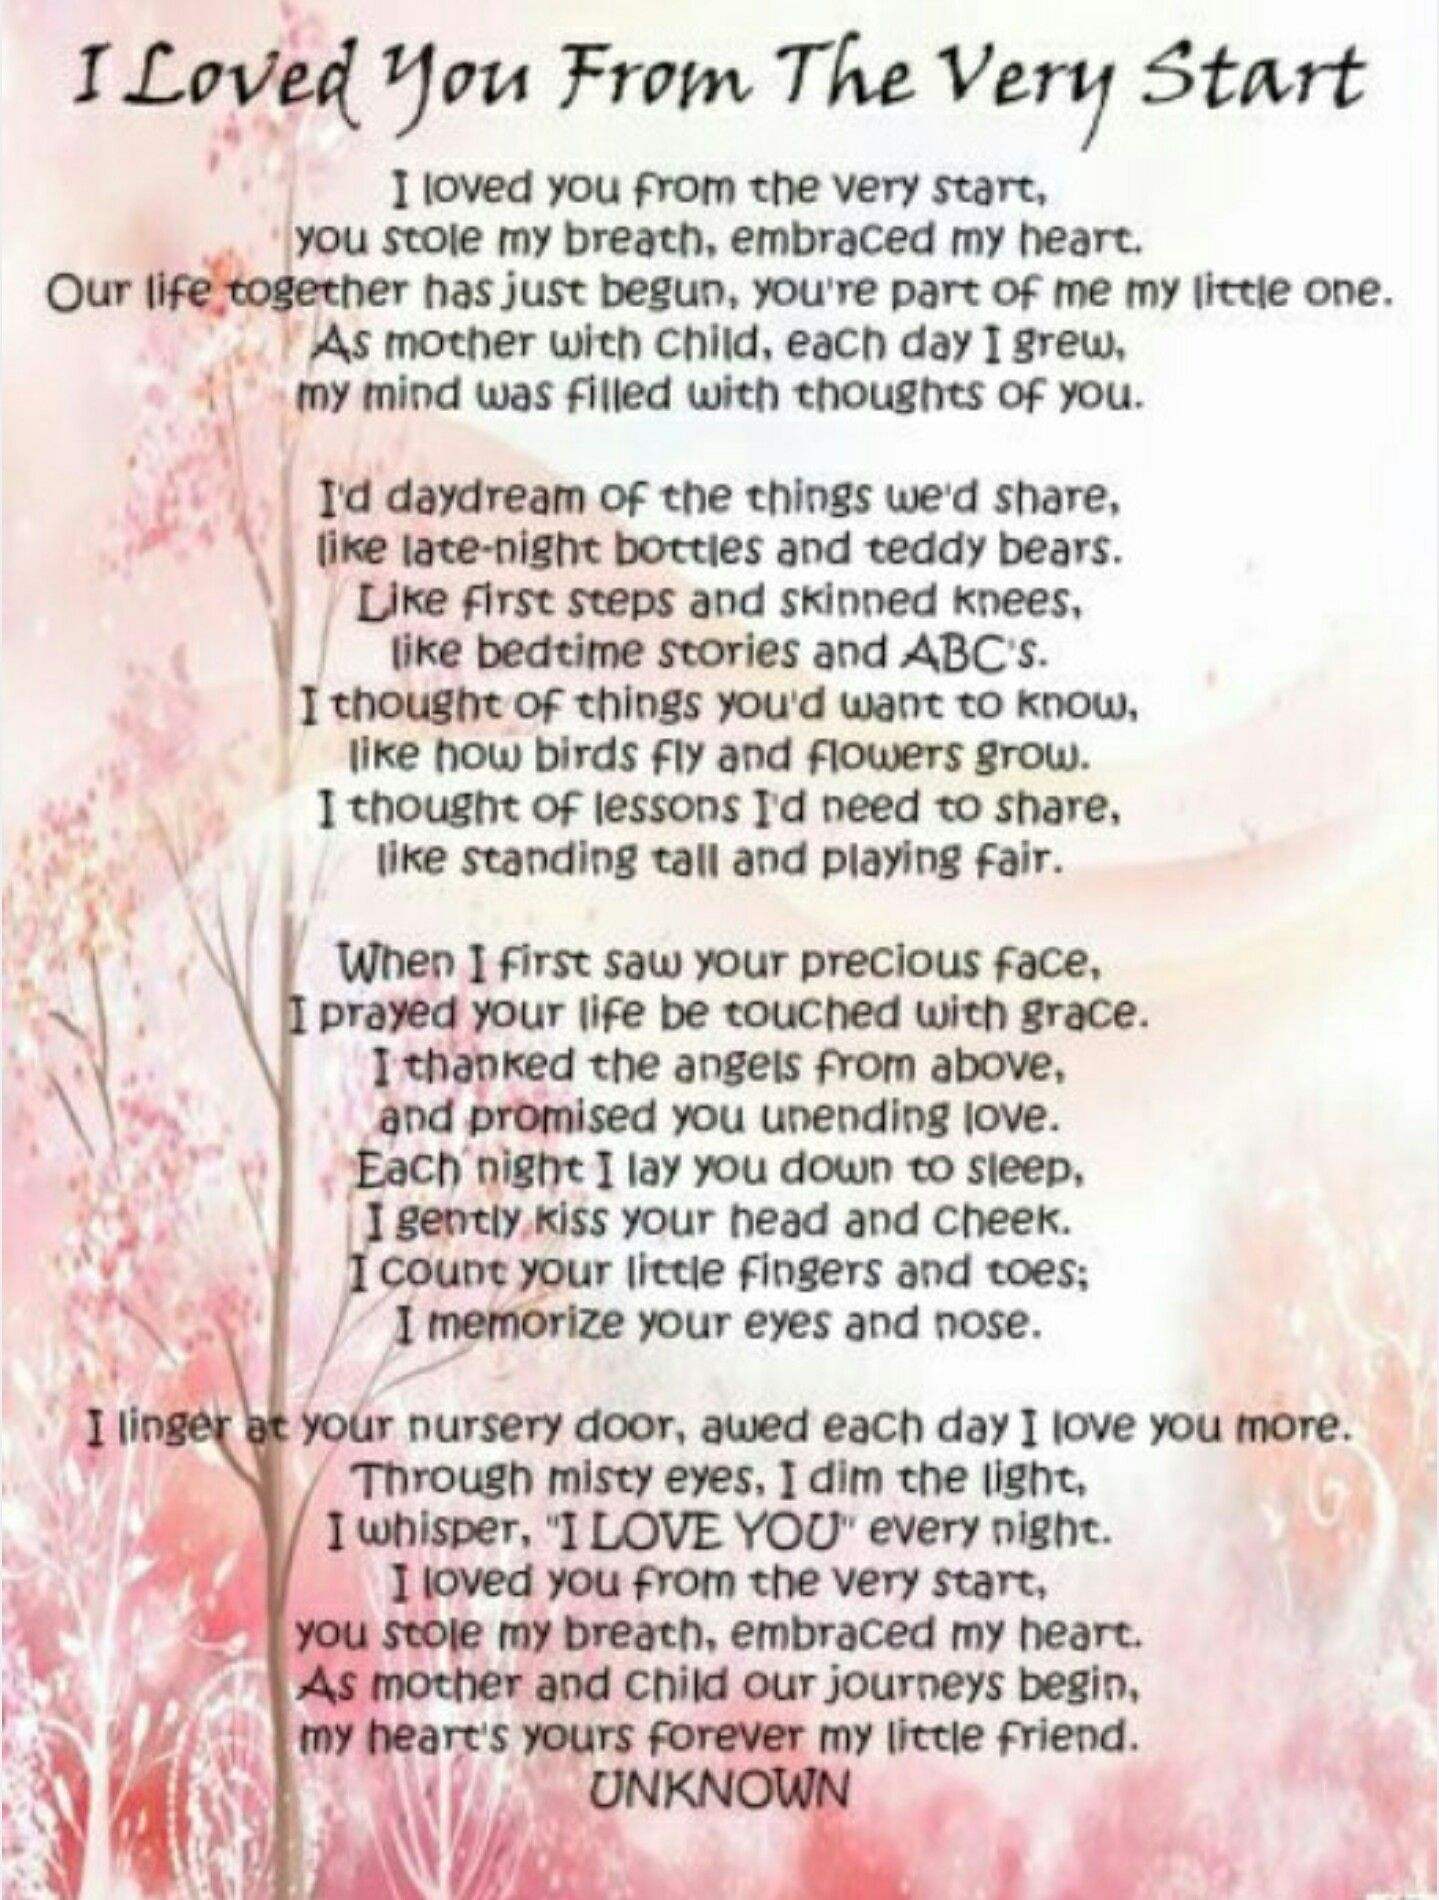 Pin by TaMmI on *Keren* | Baby girl quotes, Mother daughter quotes